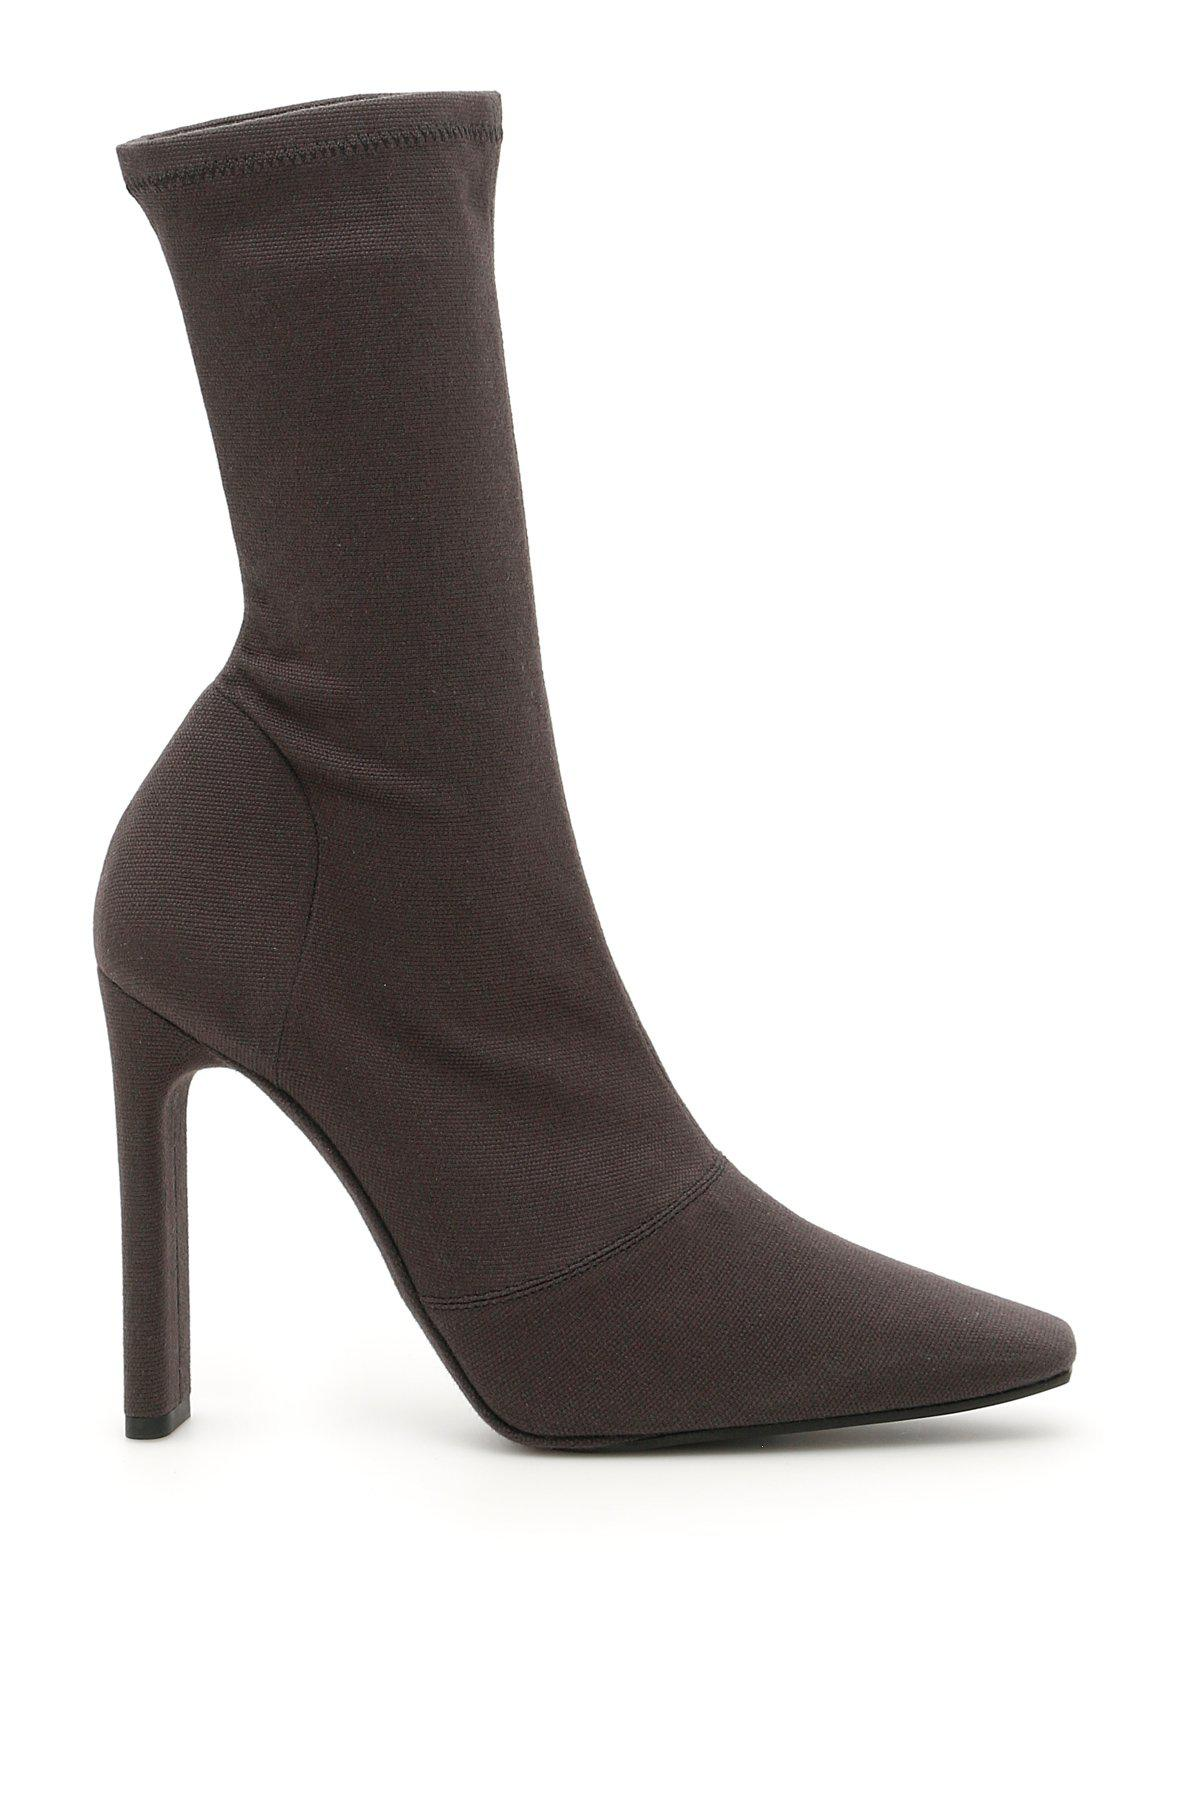 0255be68 Lyst - Yeezy Season 6 Stretch Boots in Brown